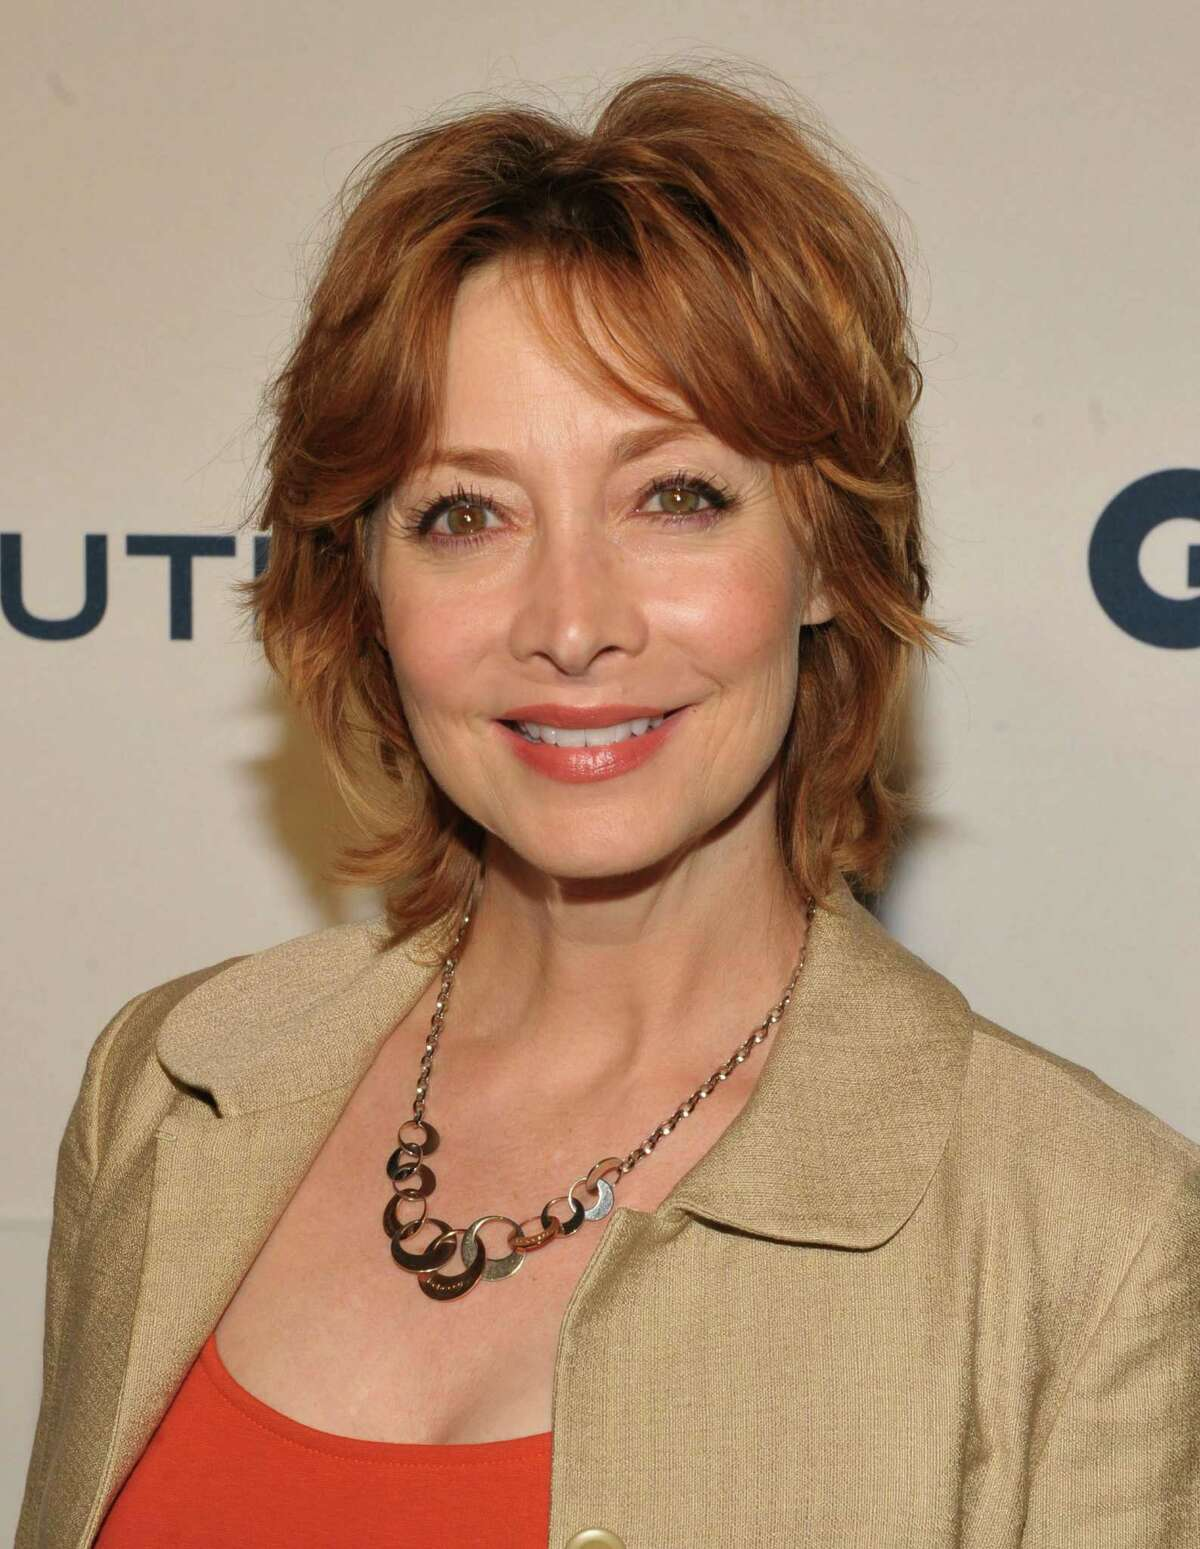 WEST HOLLYWOOD, CA - JUNE 08: Actress Sharon Lawrence attends the